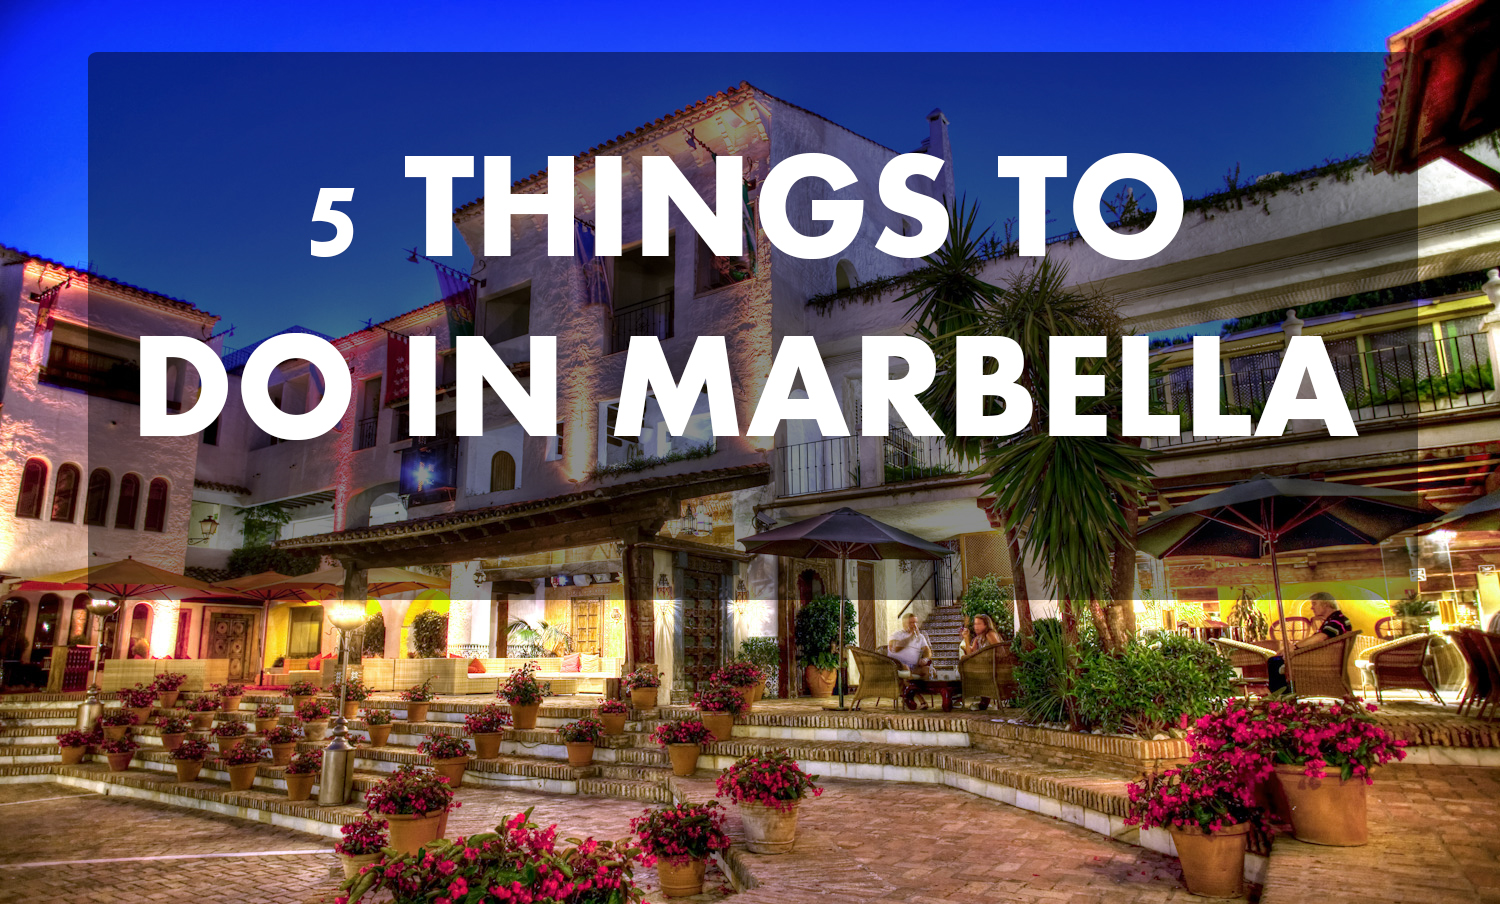 home offices in small spaces with Five Things To Do Marbella on Apartment Living For The Modern Minimalist also La Jolla Luxury Family Room Before And After together with Office Interior Design likewise Five Things To Do Marbella furthermore Coolest Offices 2015 Medium.